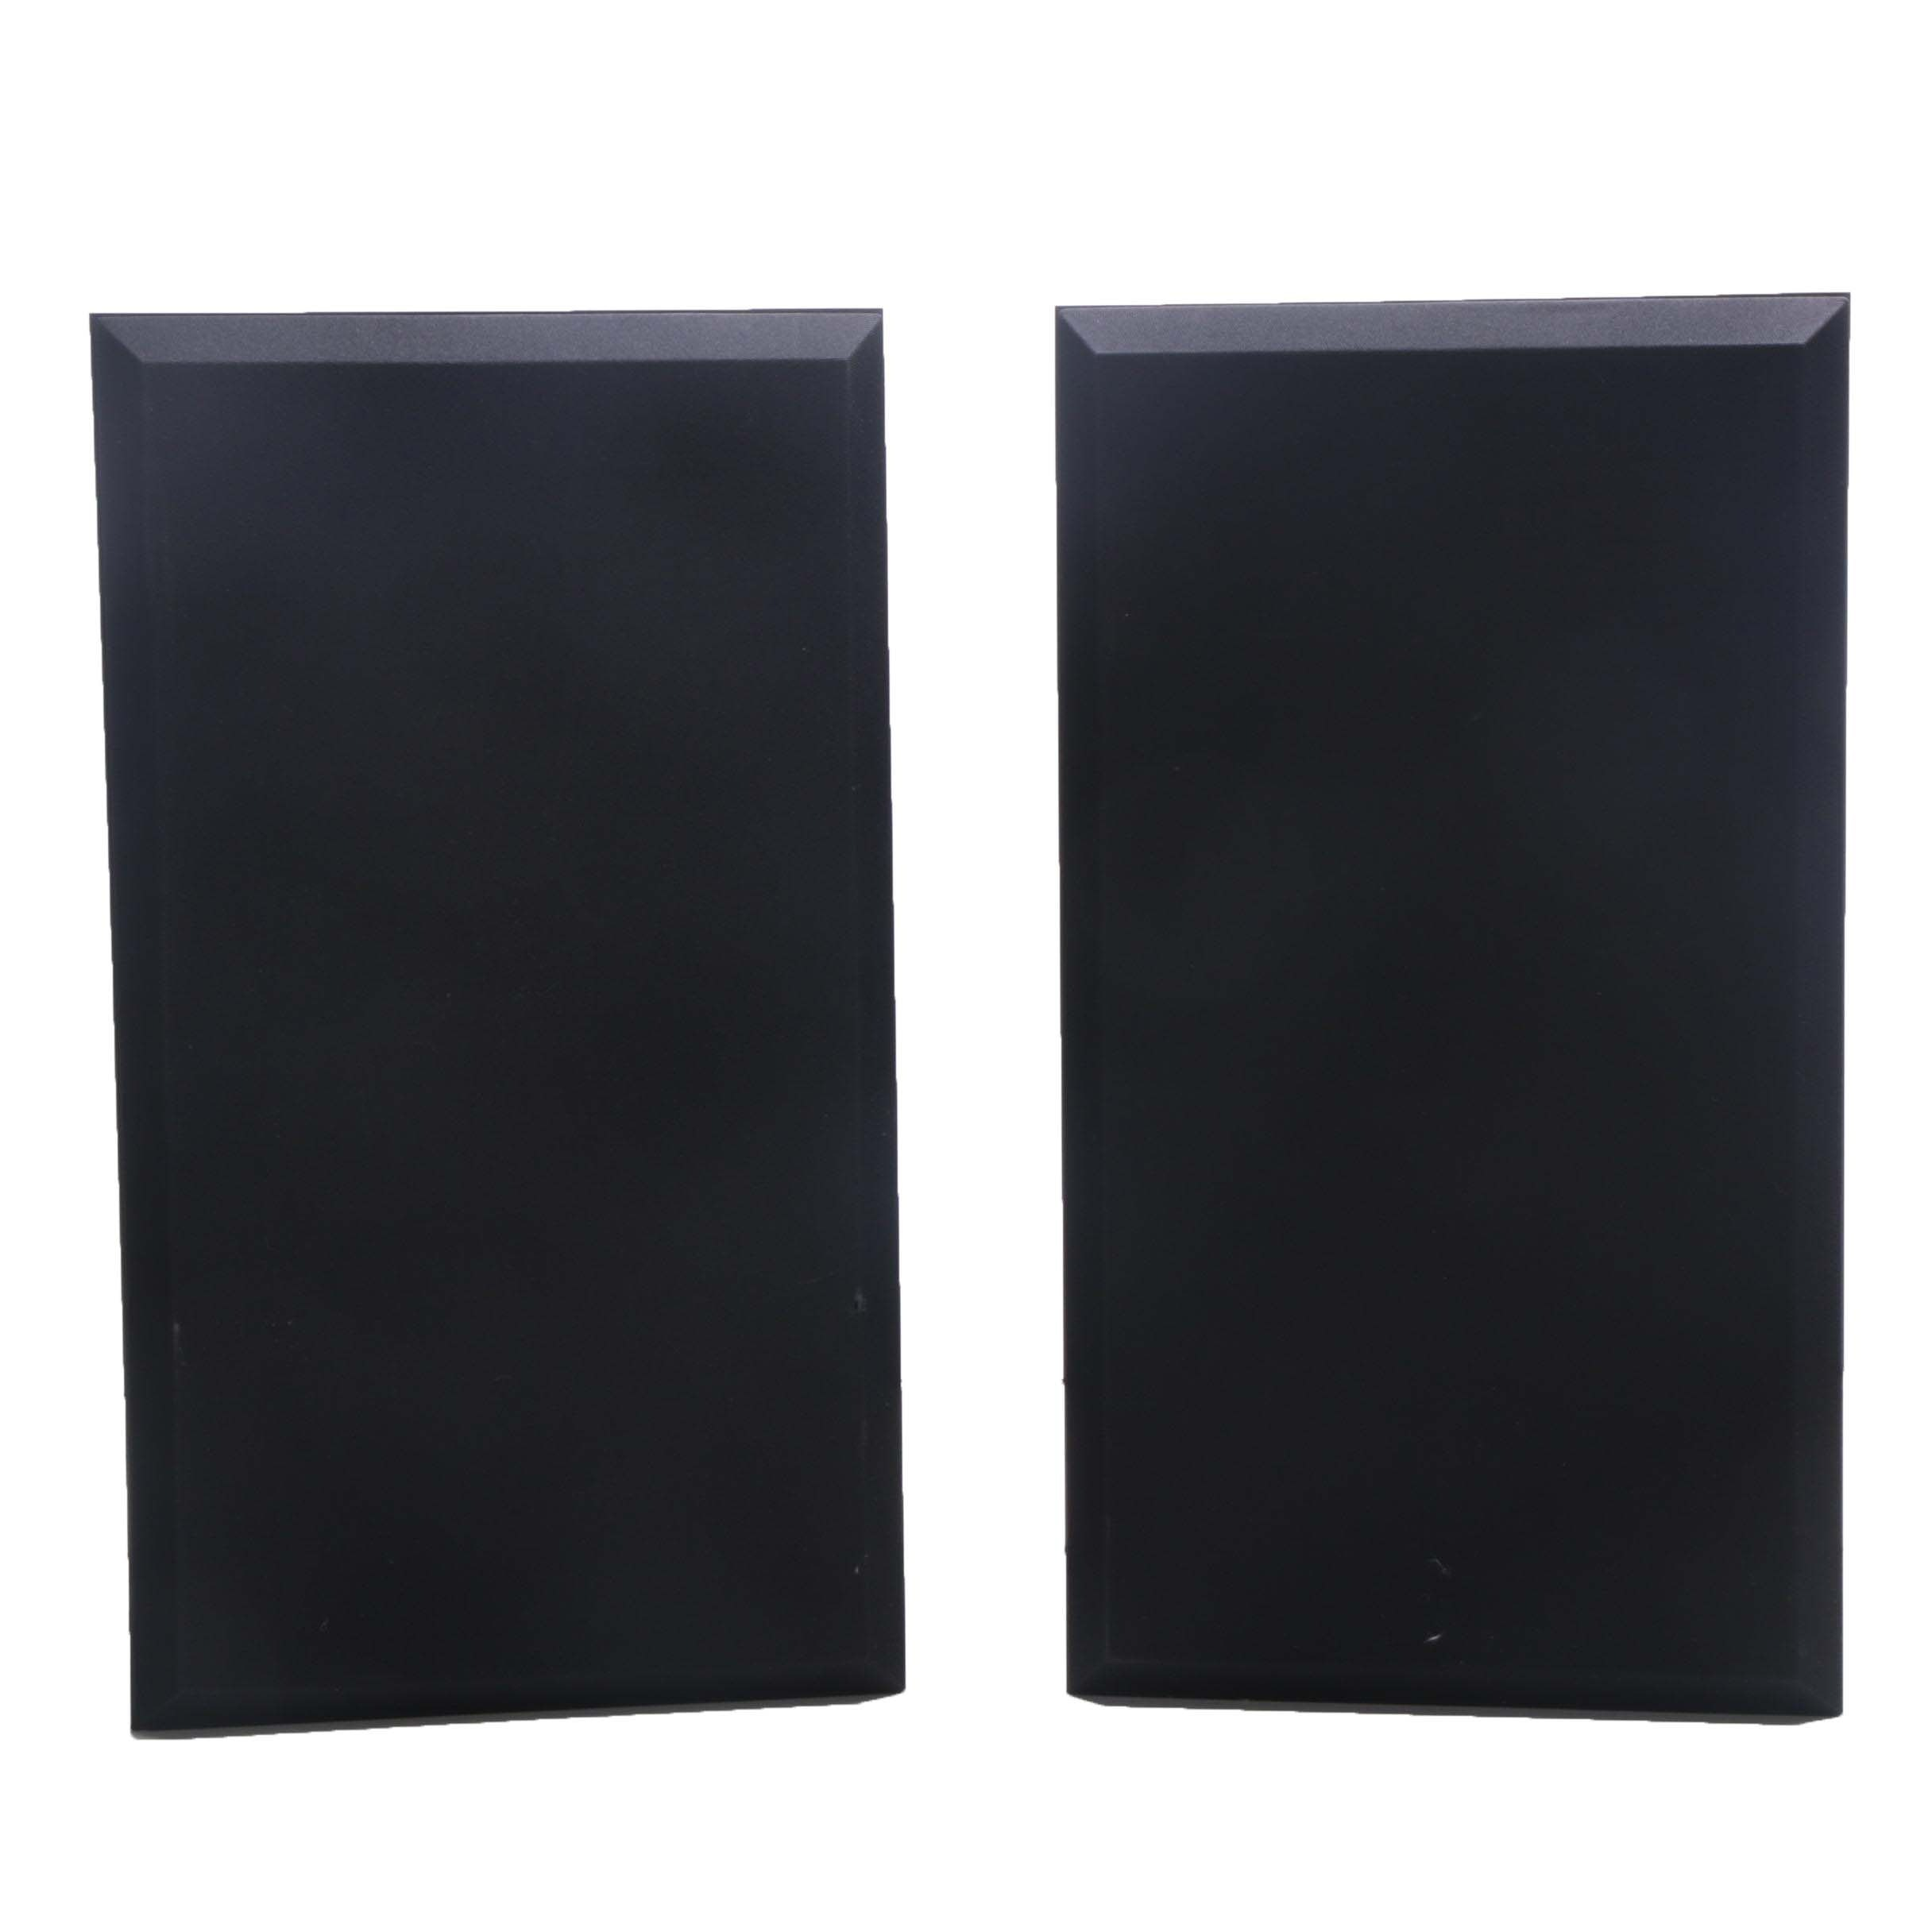 Acoustic Reference Speakers